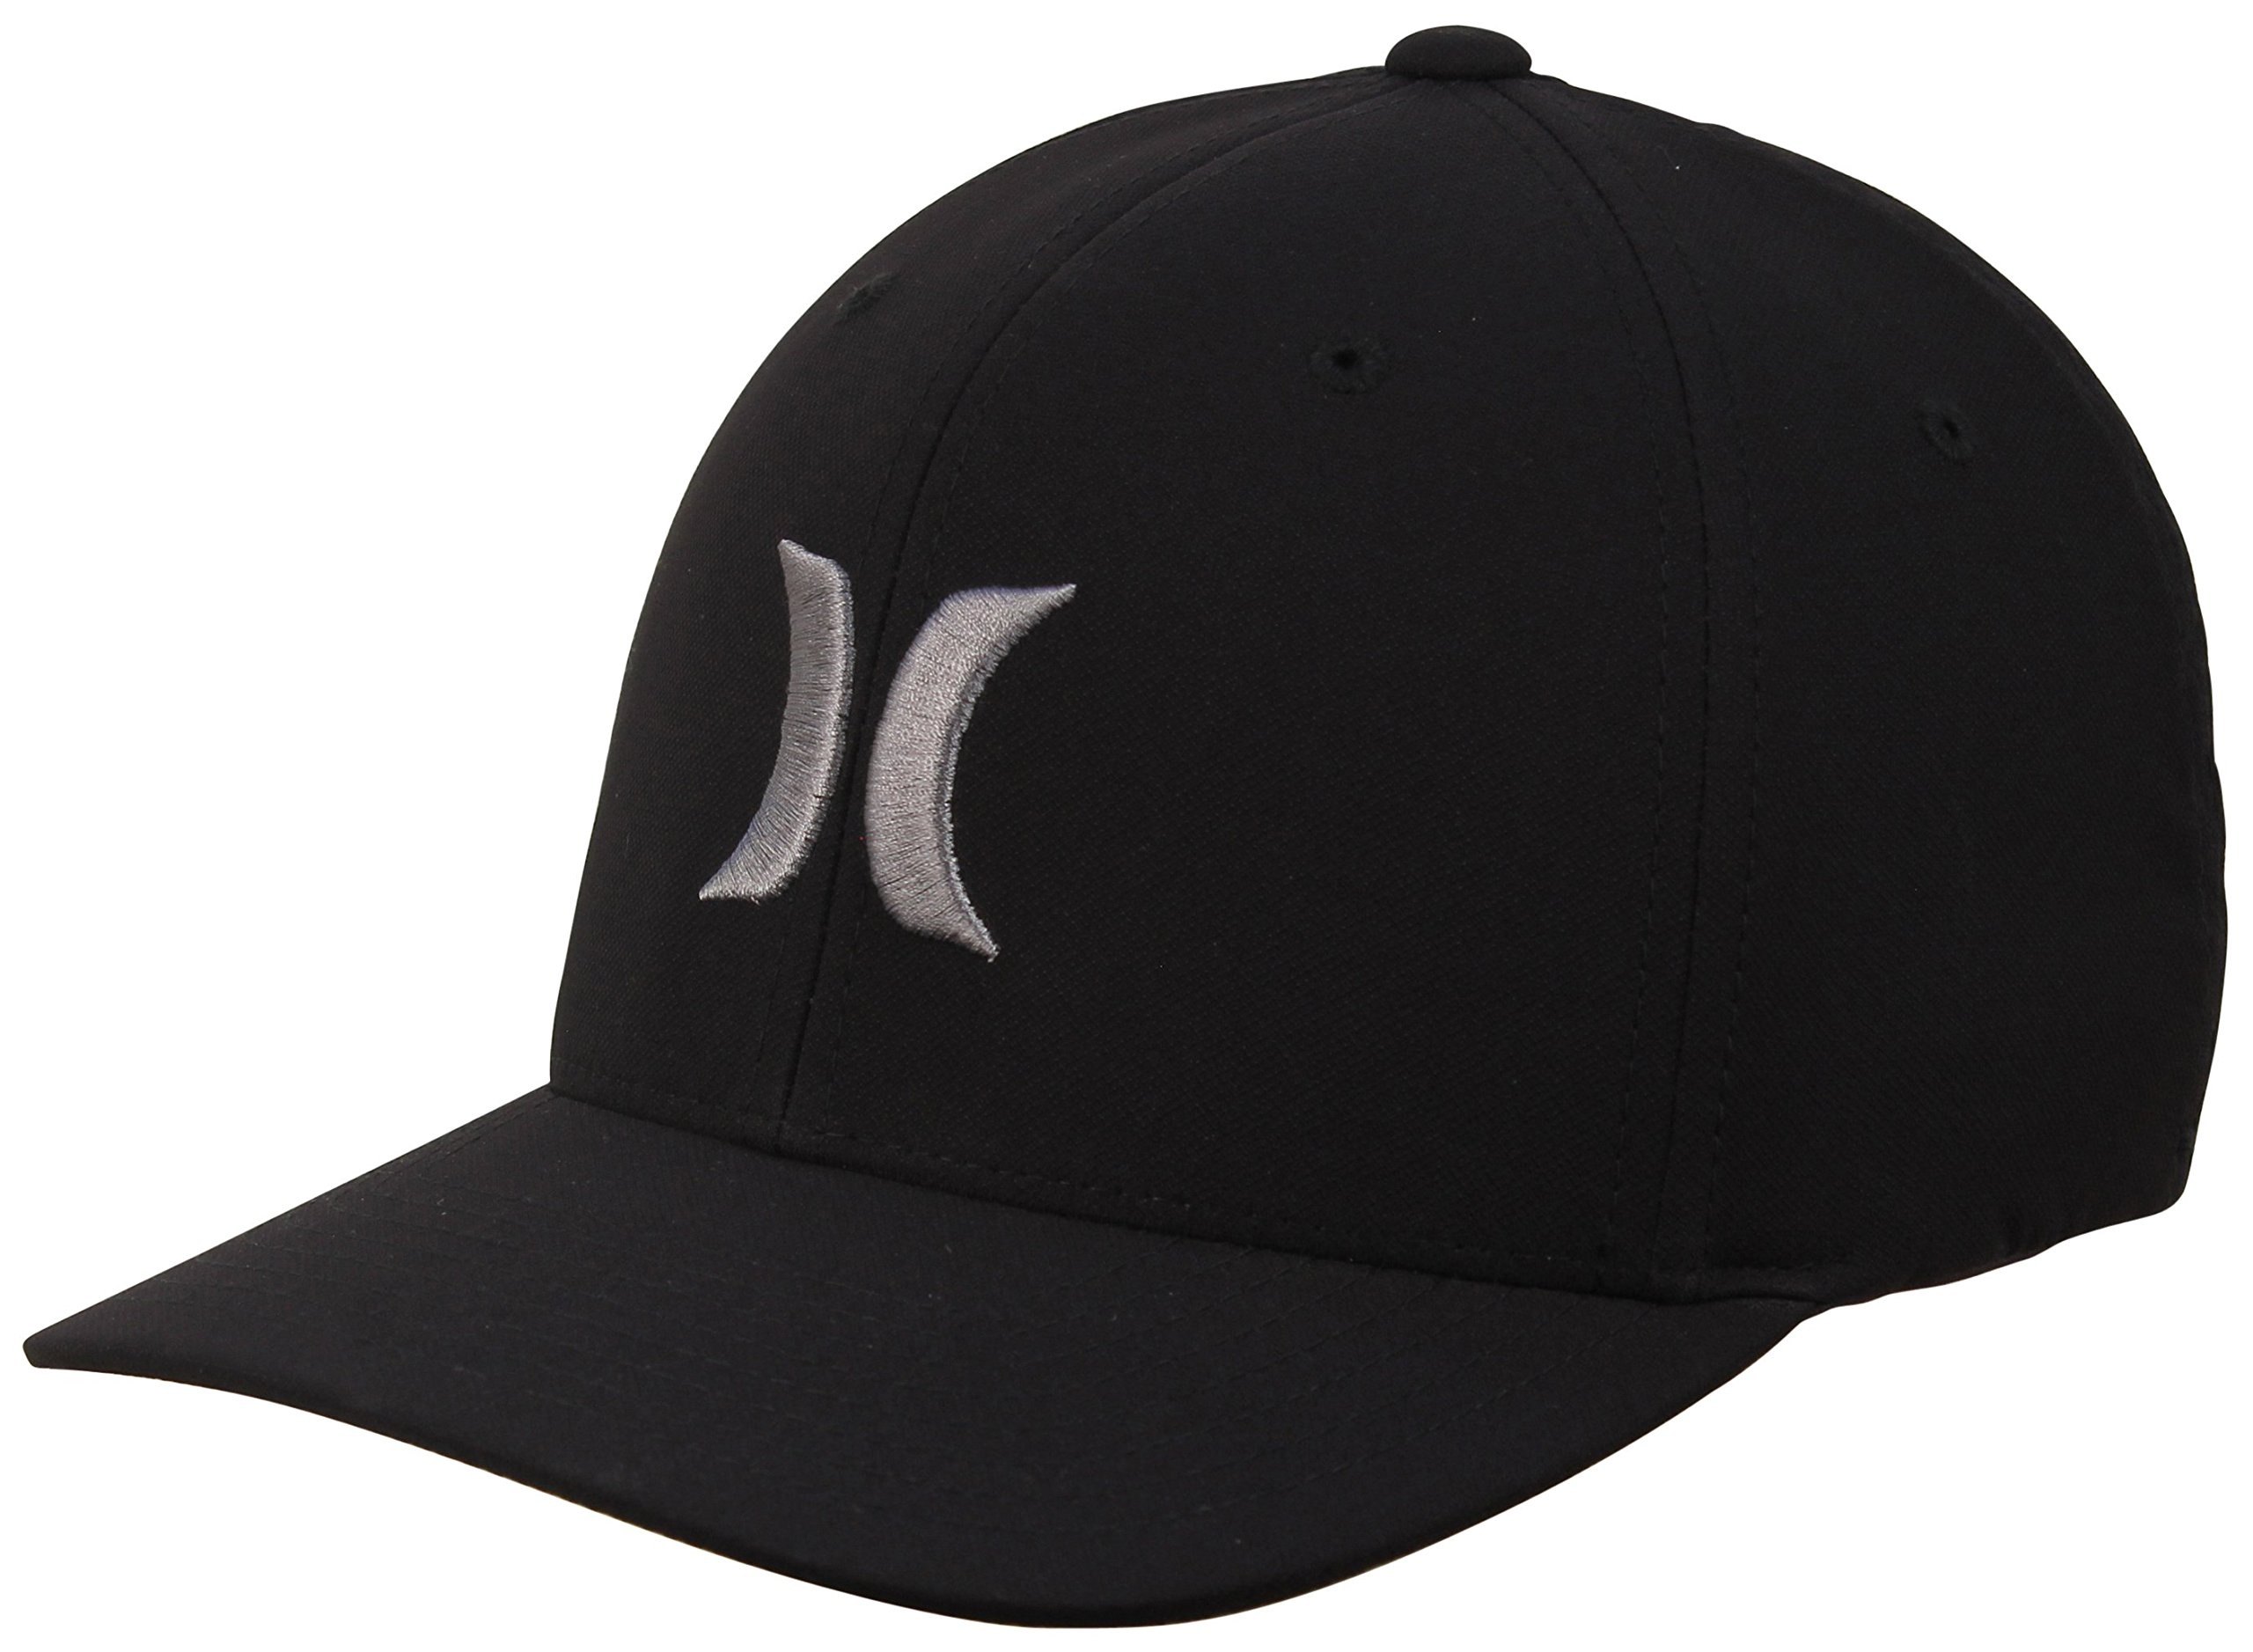 Hurley Dri-Fit One and Only Hat - Black/Cool Grey - S/M